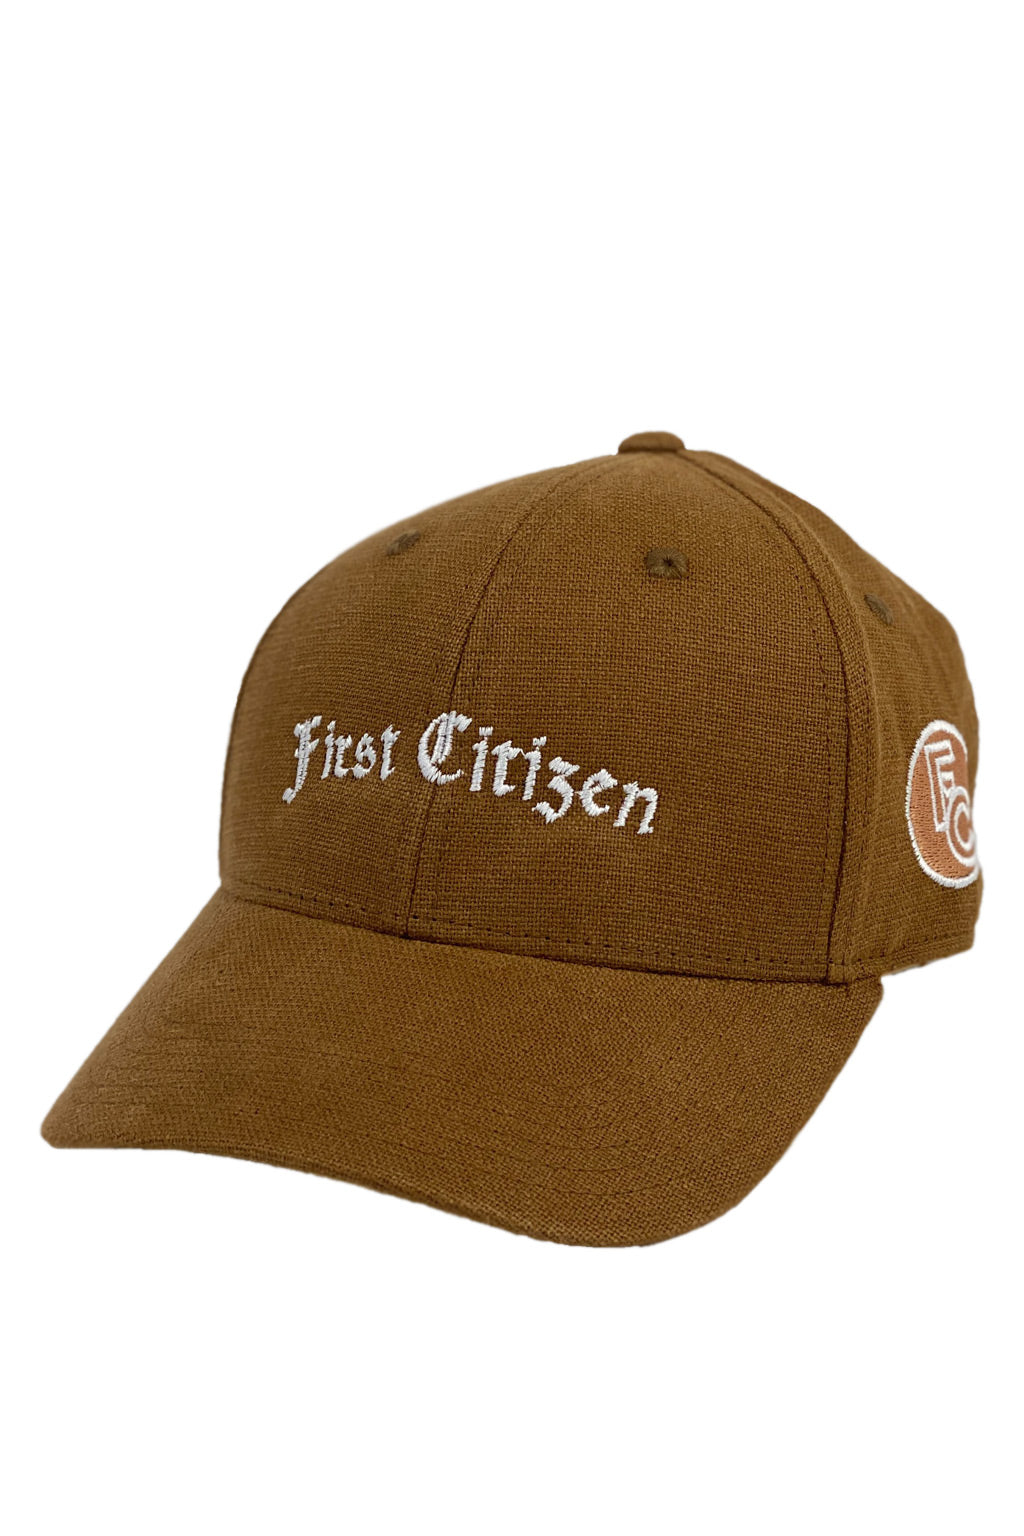 First Citizen Ladies Strapback Hat